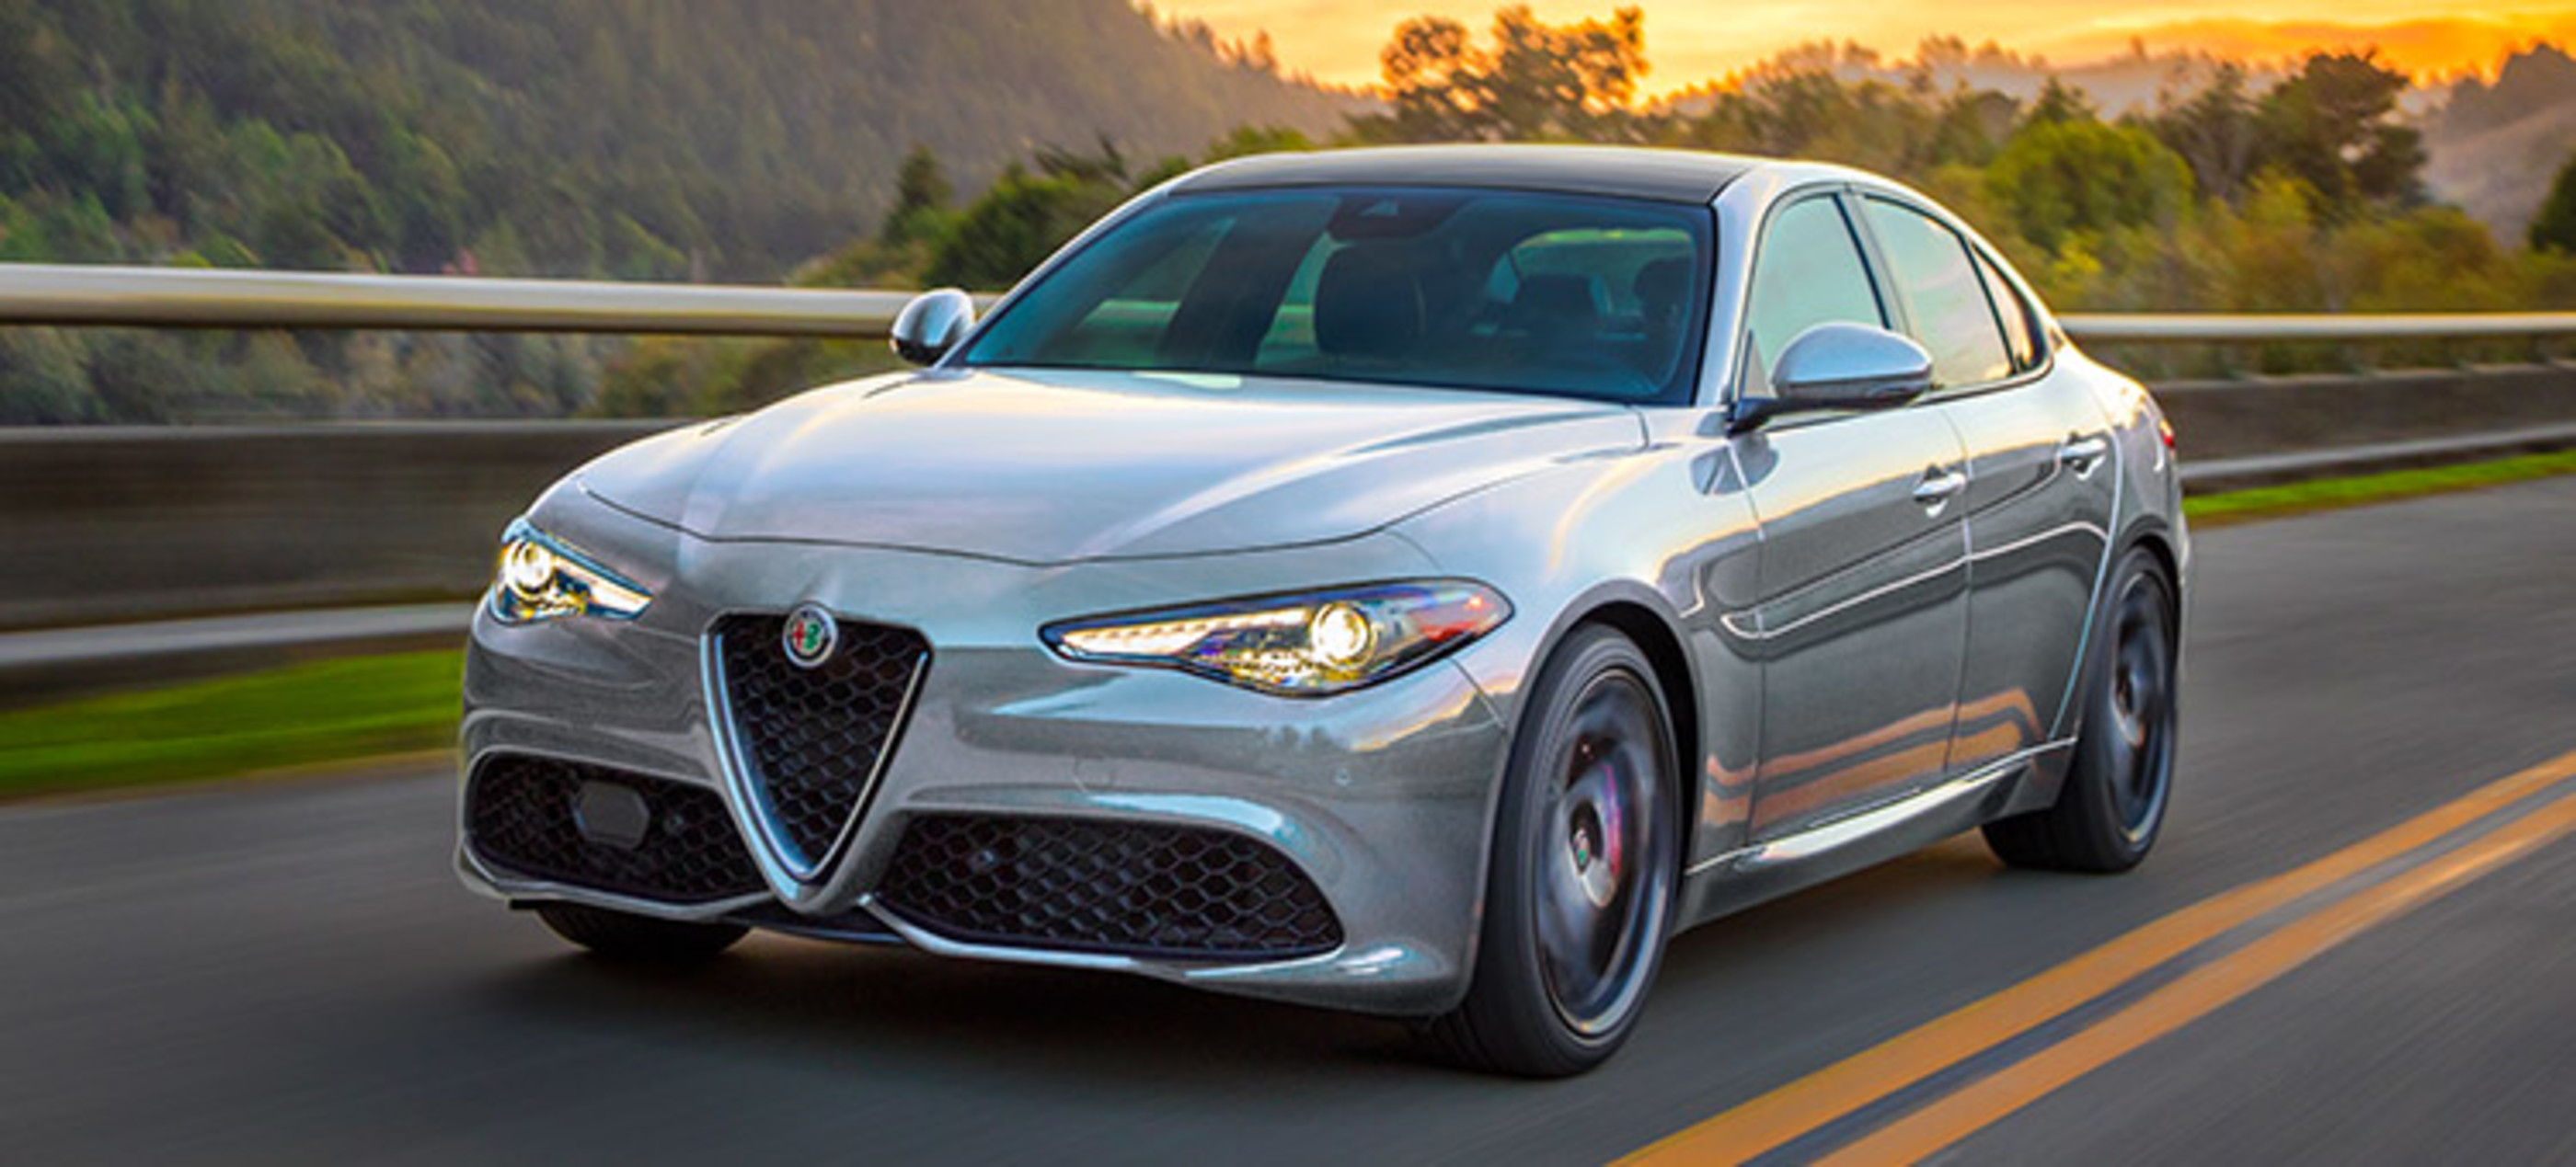 Front view of a silver Alfa Romeo Giulia, being driven on road in the mountains